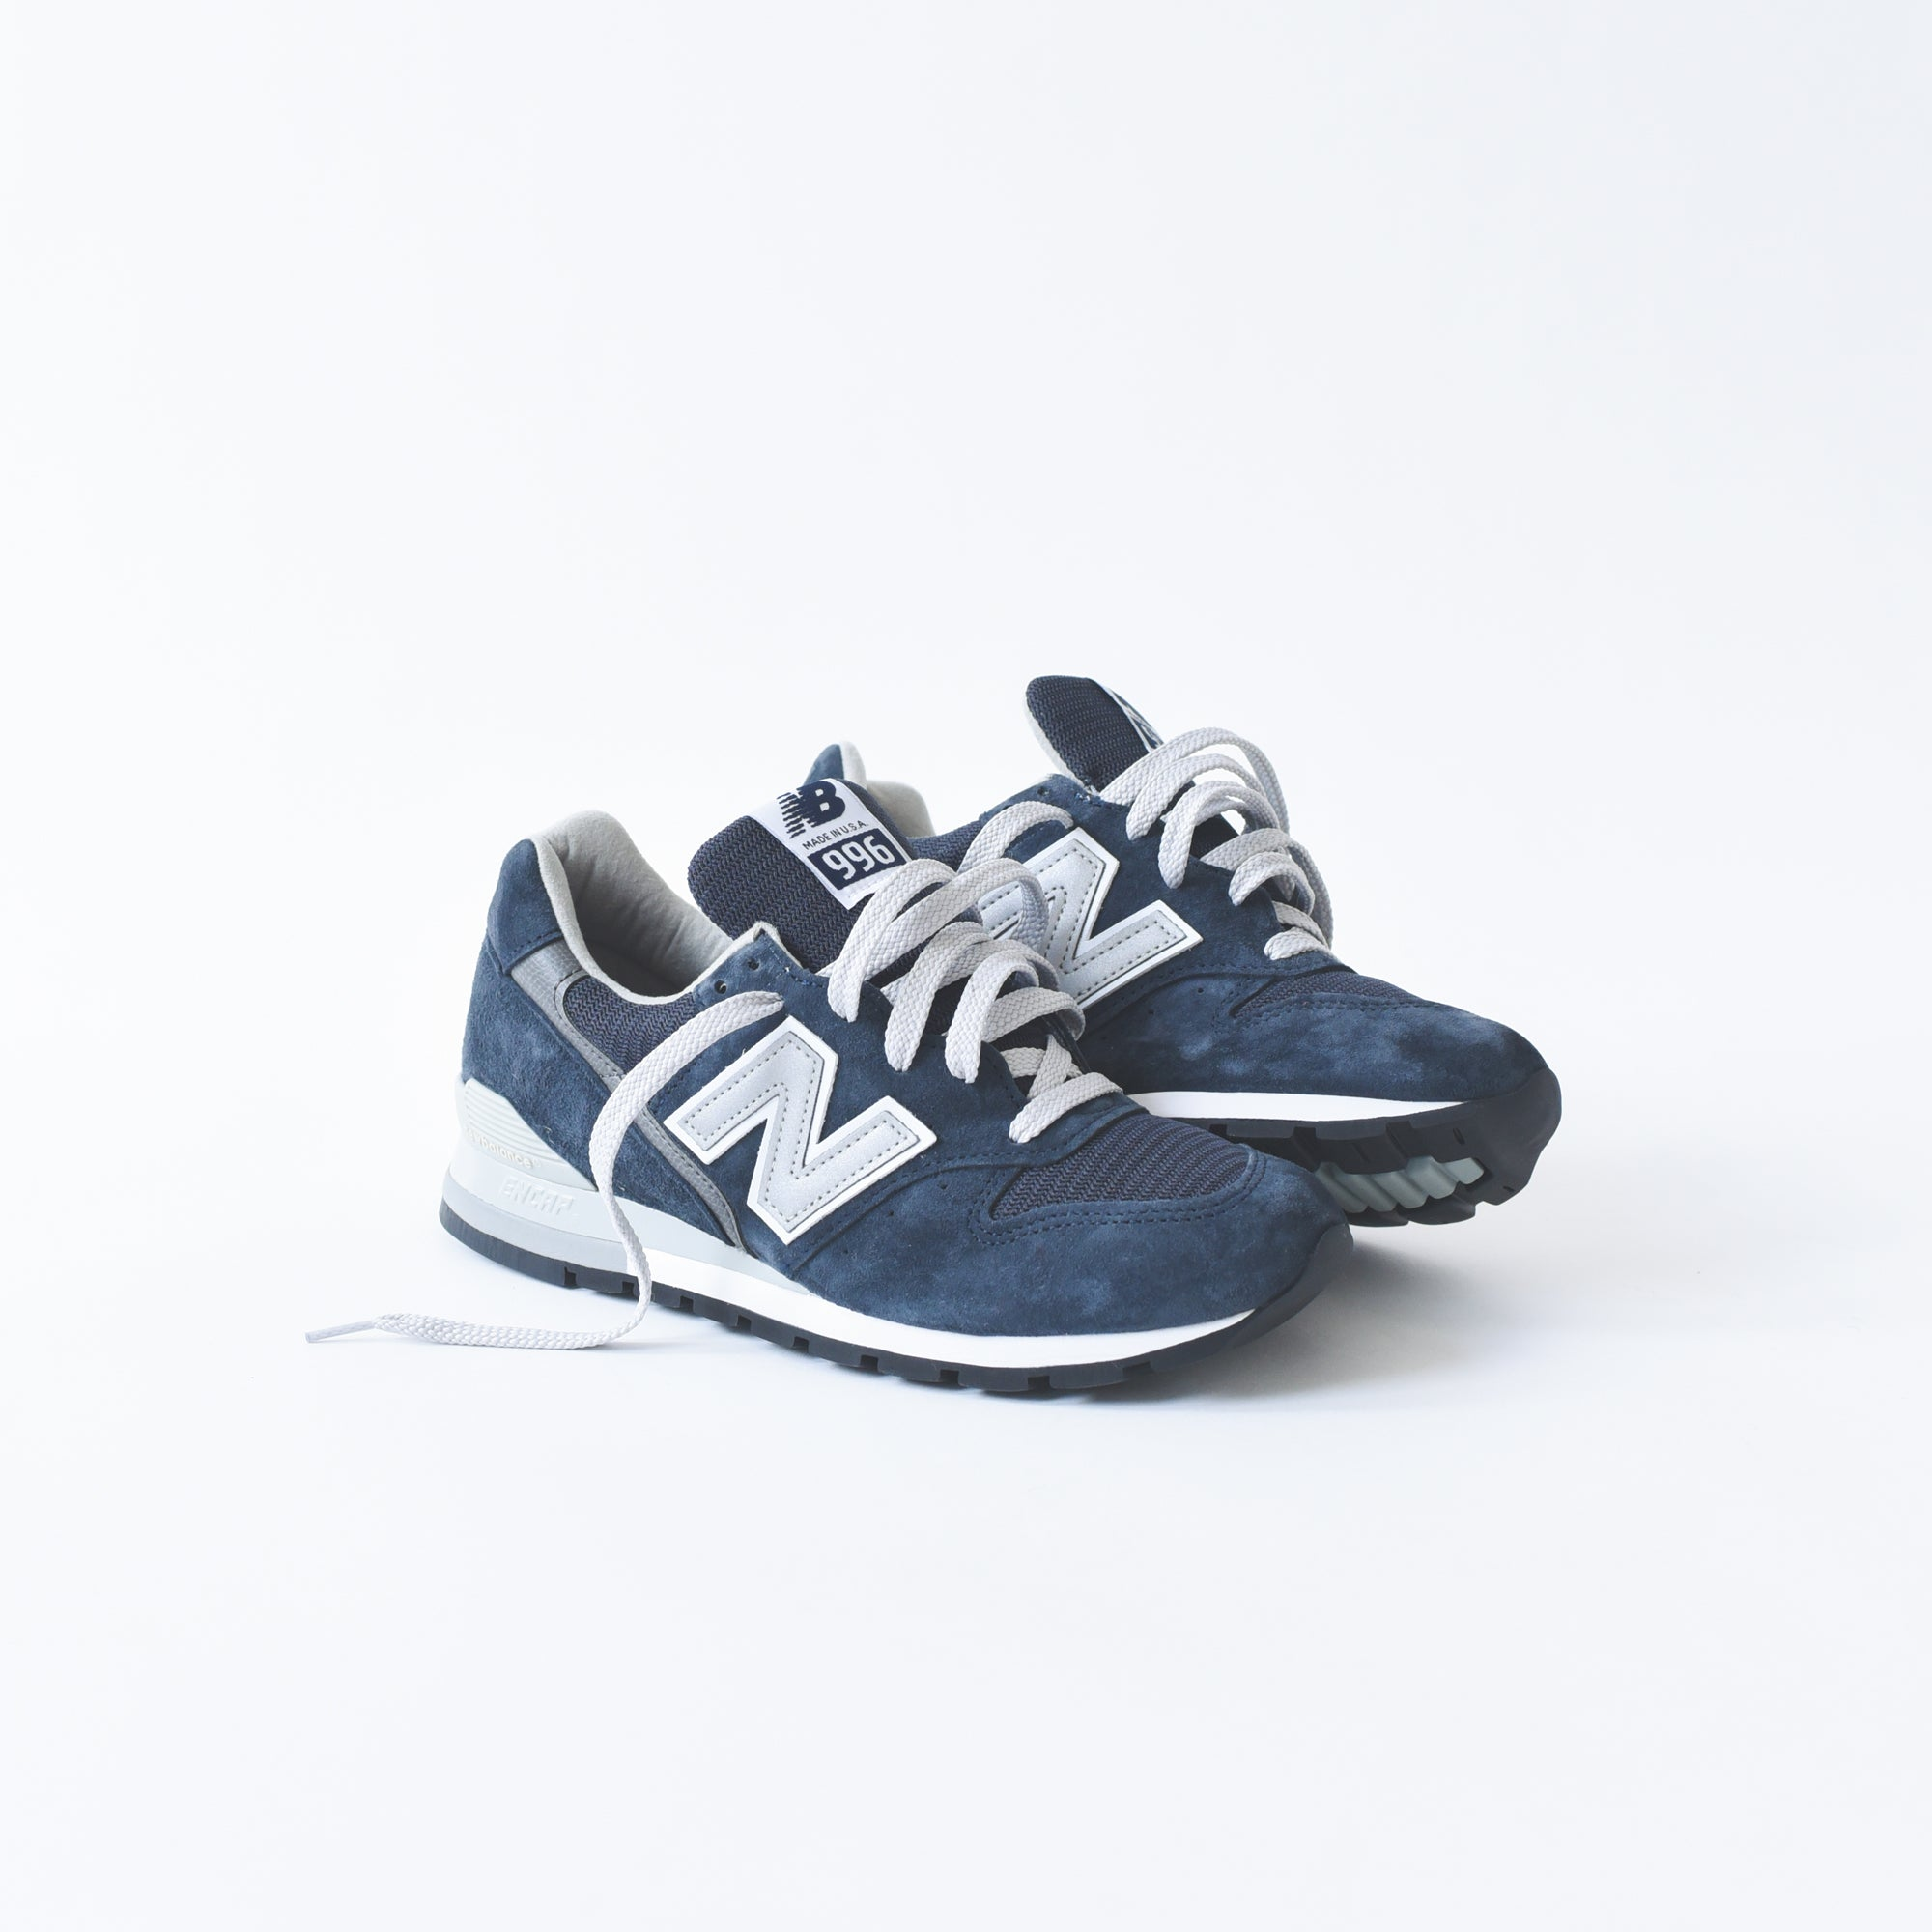 official photos 837bb 8183f New Balance 996 - Navy / White